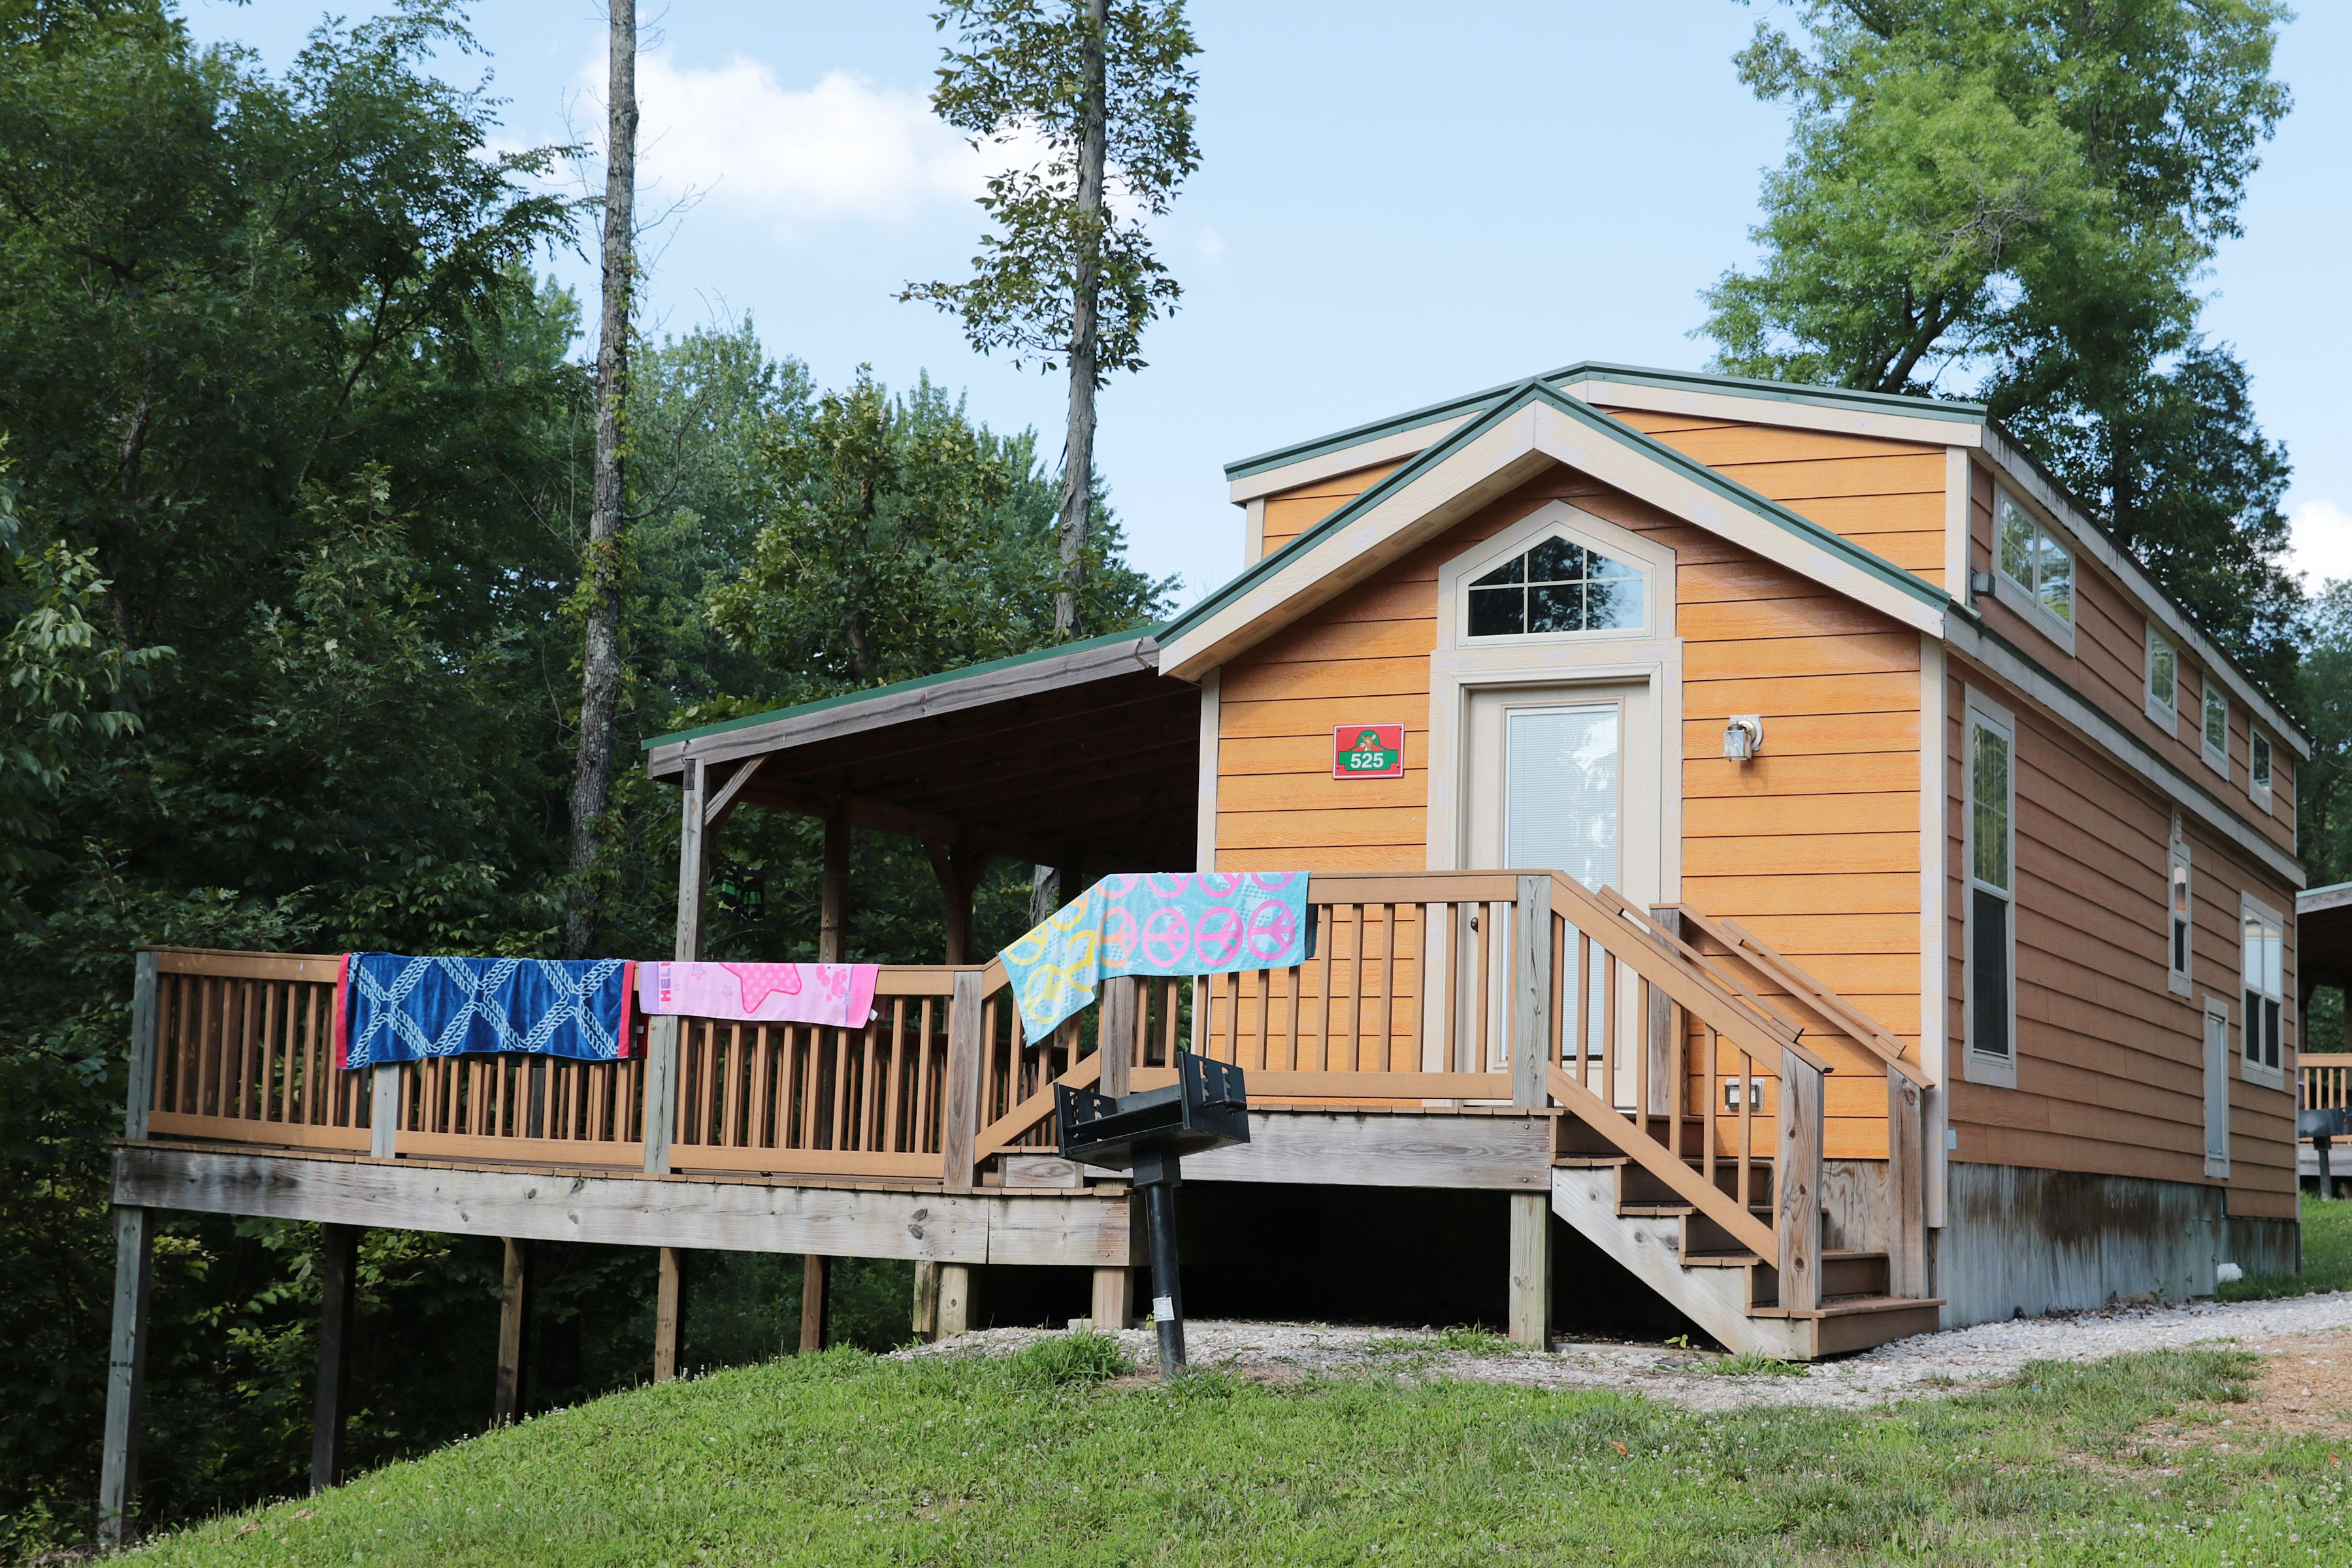 Lake Rudolph Campground Rv Resort In Santa Claus Indiana State Park Cabins Family Friendly Vacation Holiday World